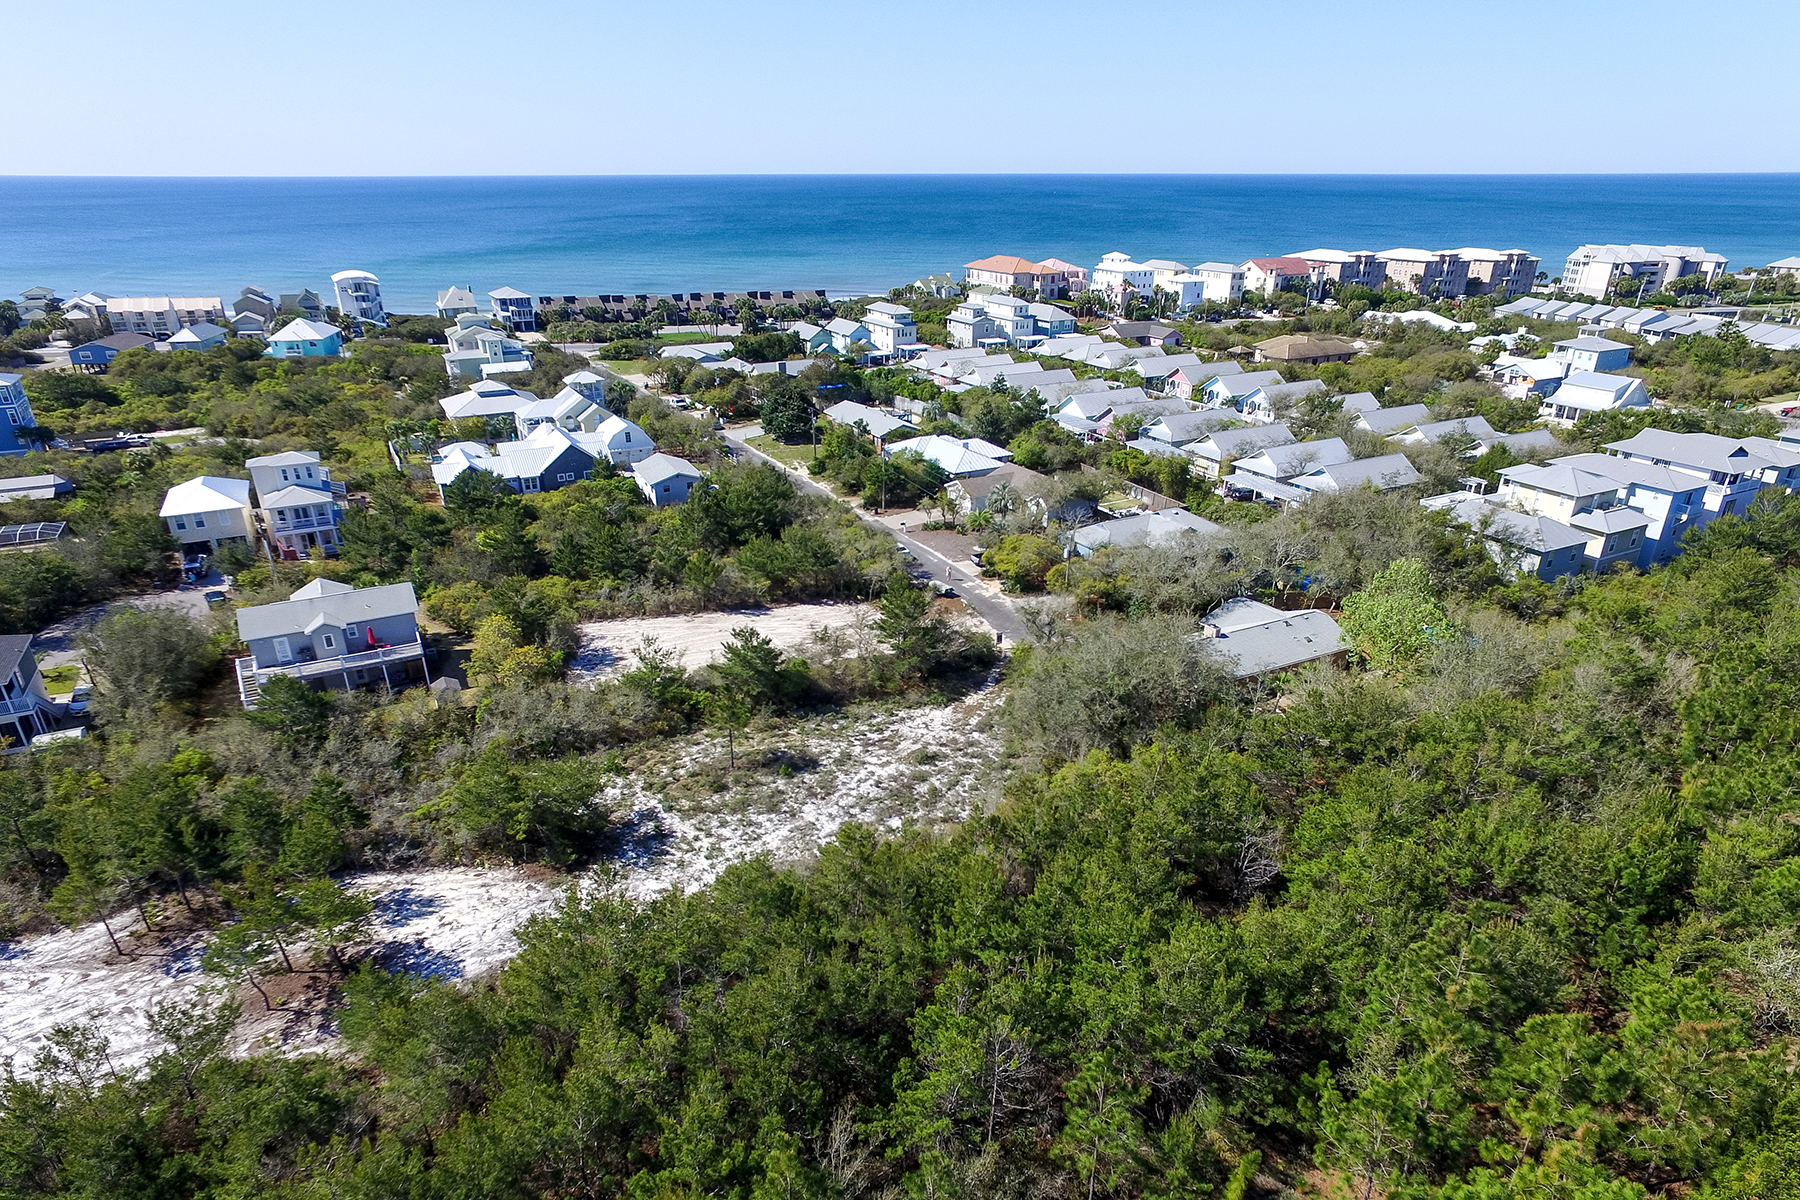 Terreno para Venda às NATURALIZED CUL-DE-SAC LOT WITH DEEDED BEACH ACCESS Lot 12 Walton Gulfview Drive Seacrest, Florida, 32461 Estados Unidos